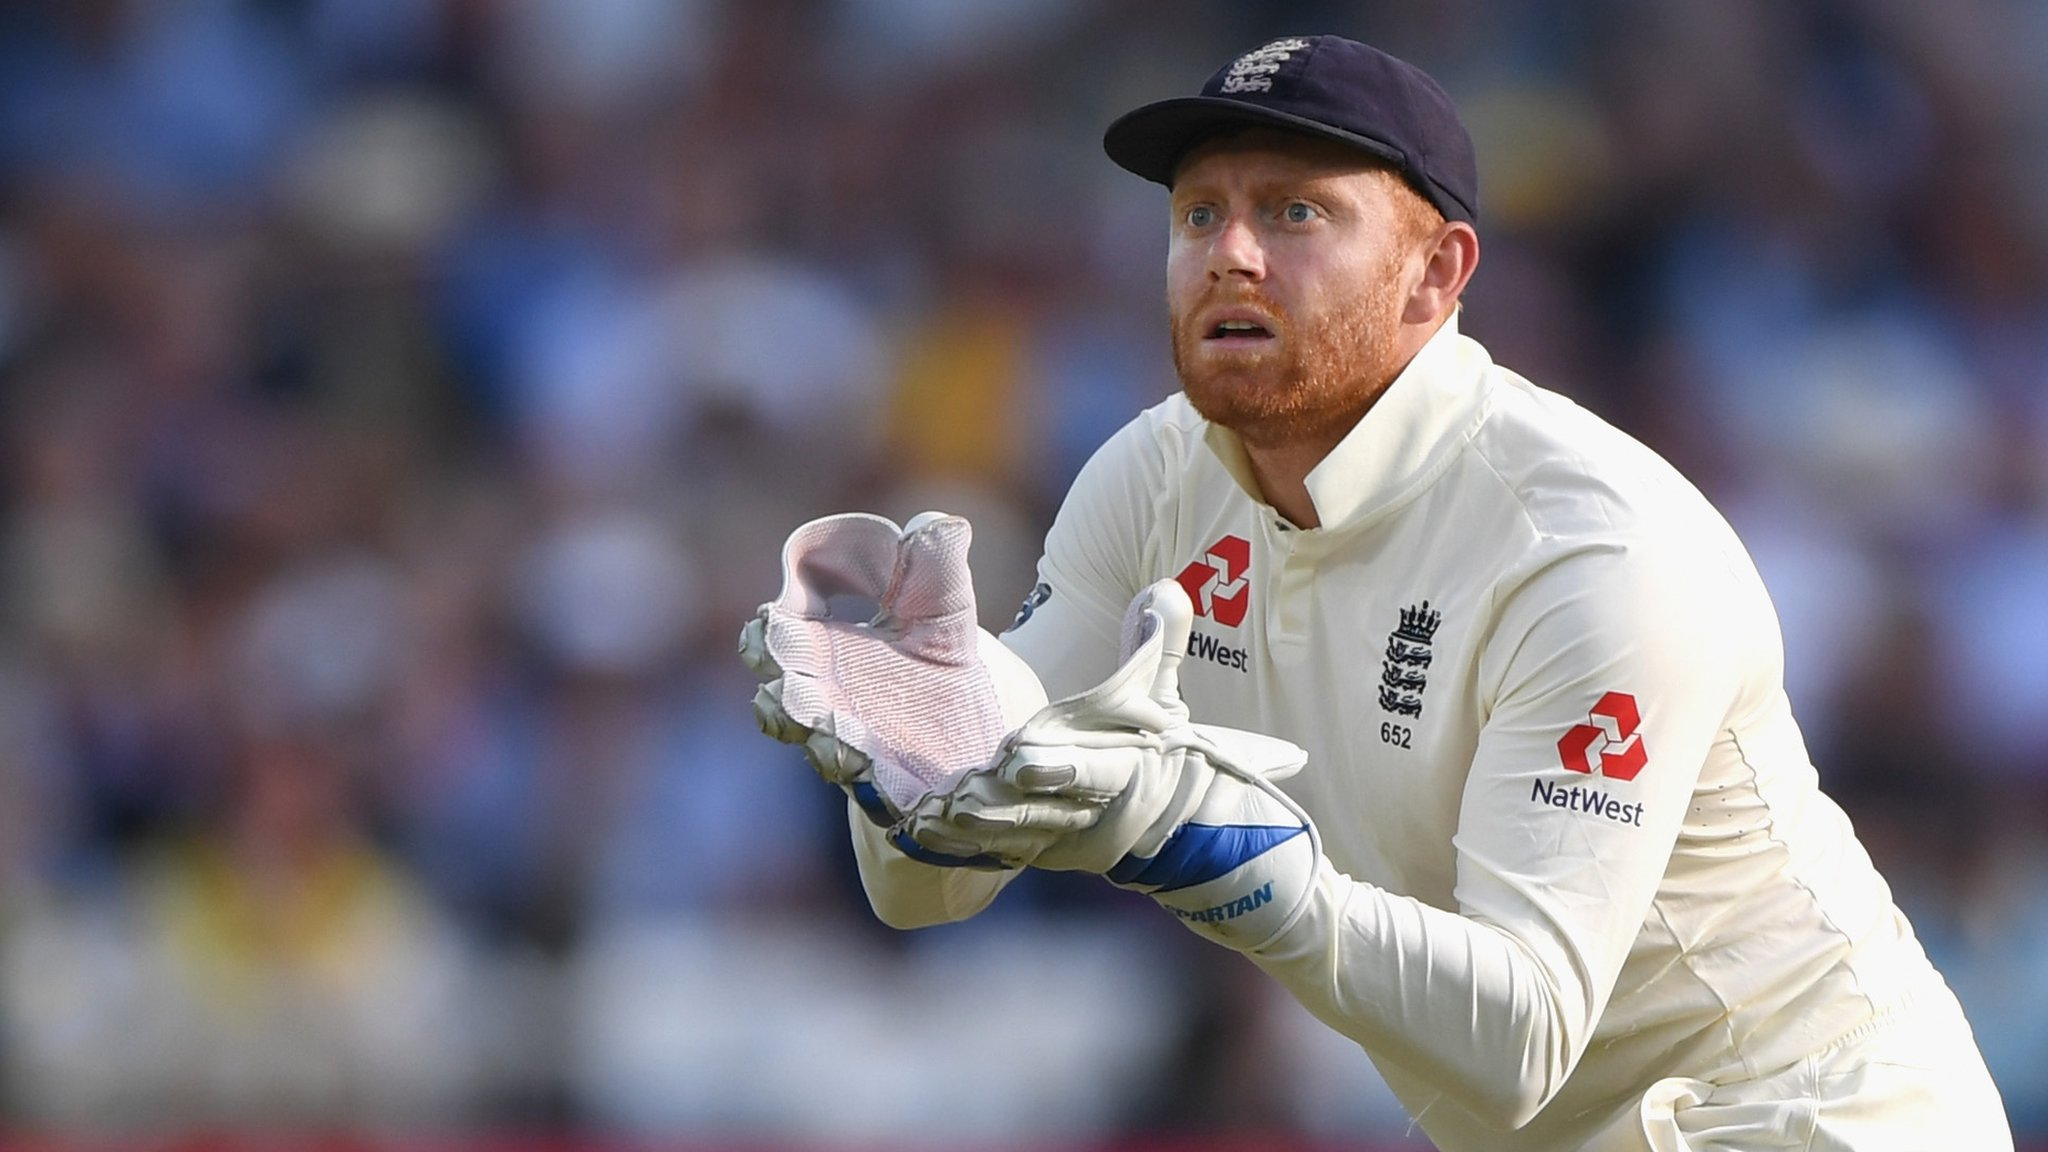 'I'm working on both my primary skills' - Bairstow will not give up on dual England role